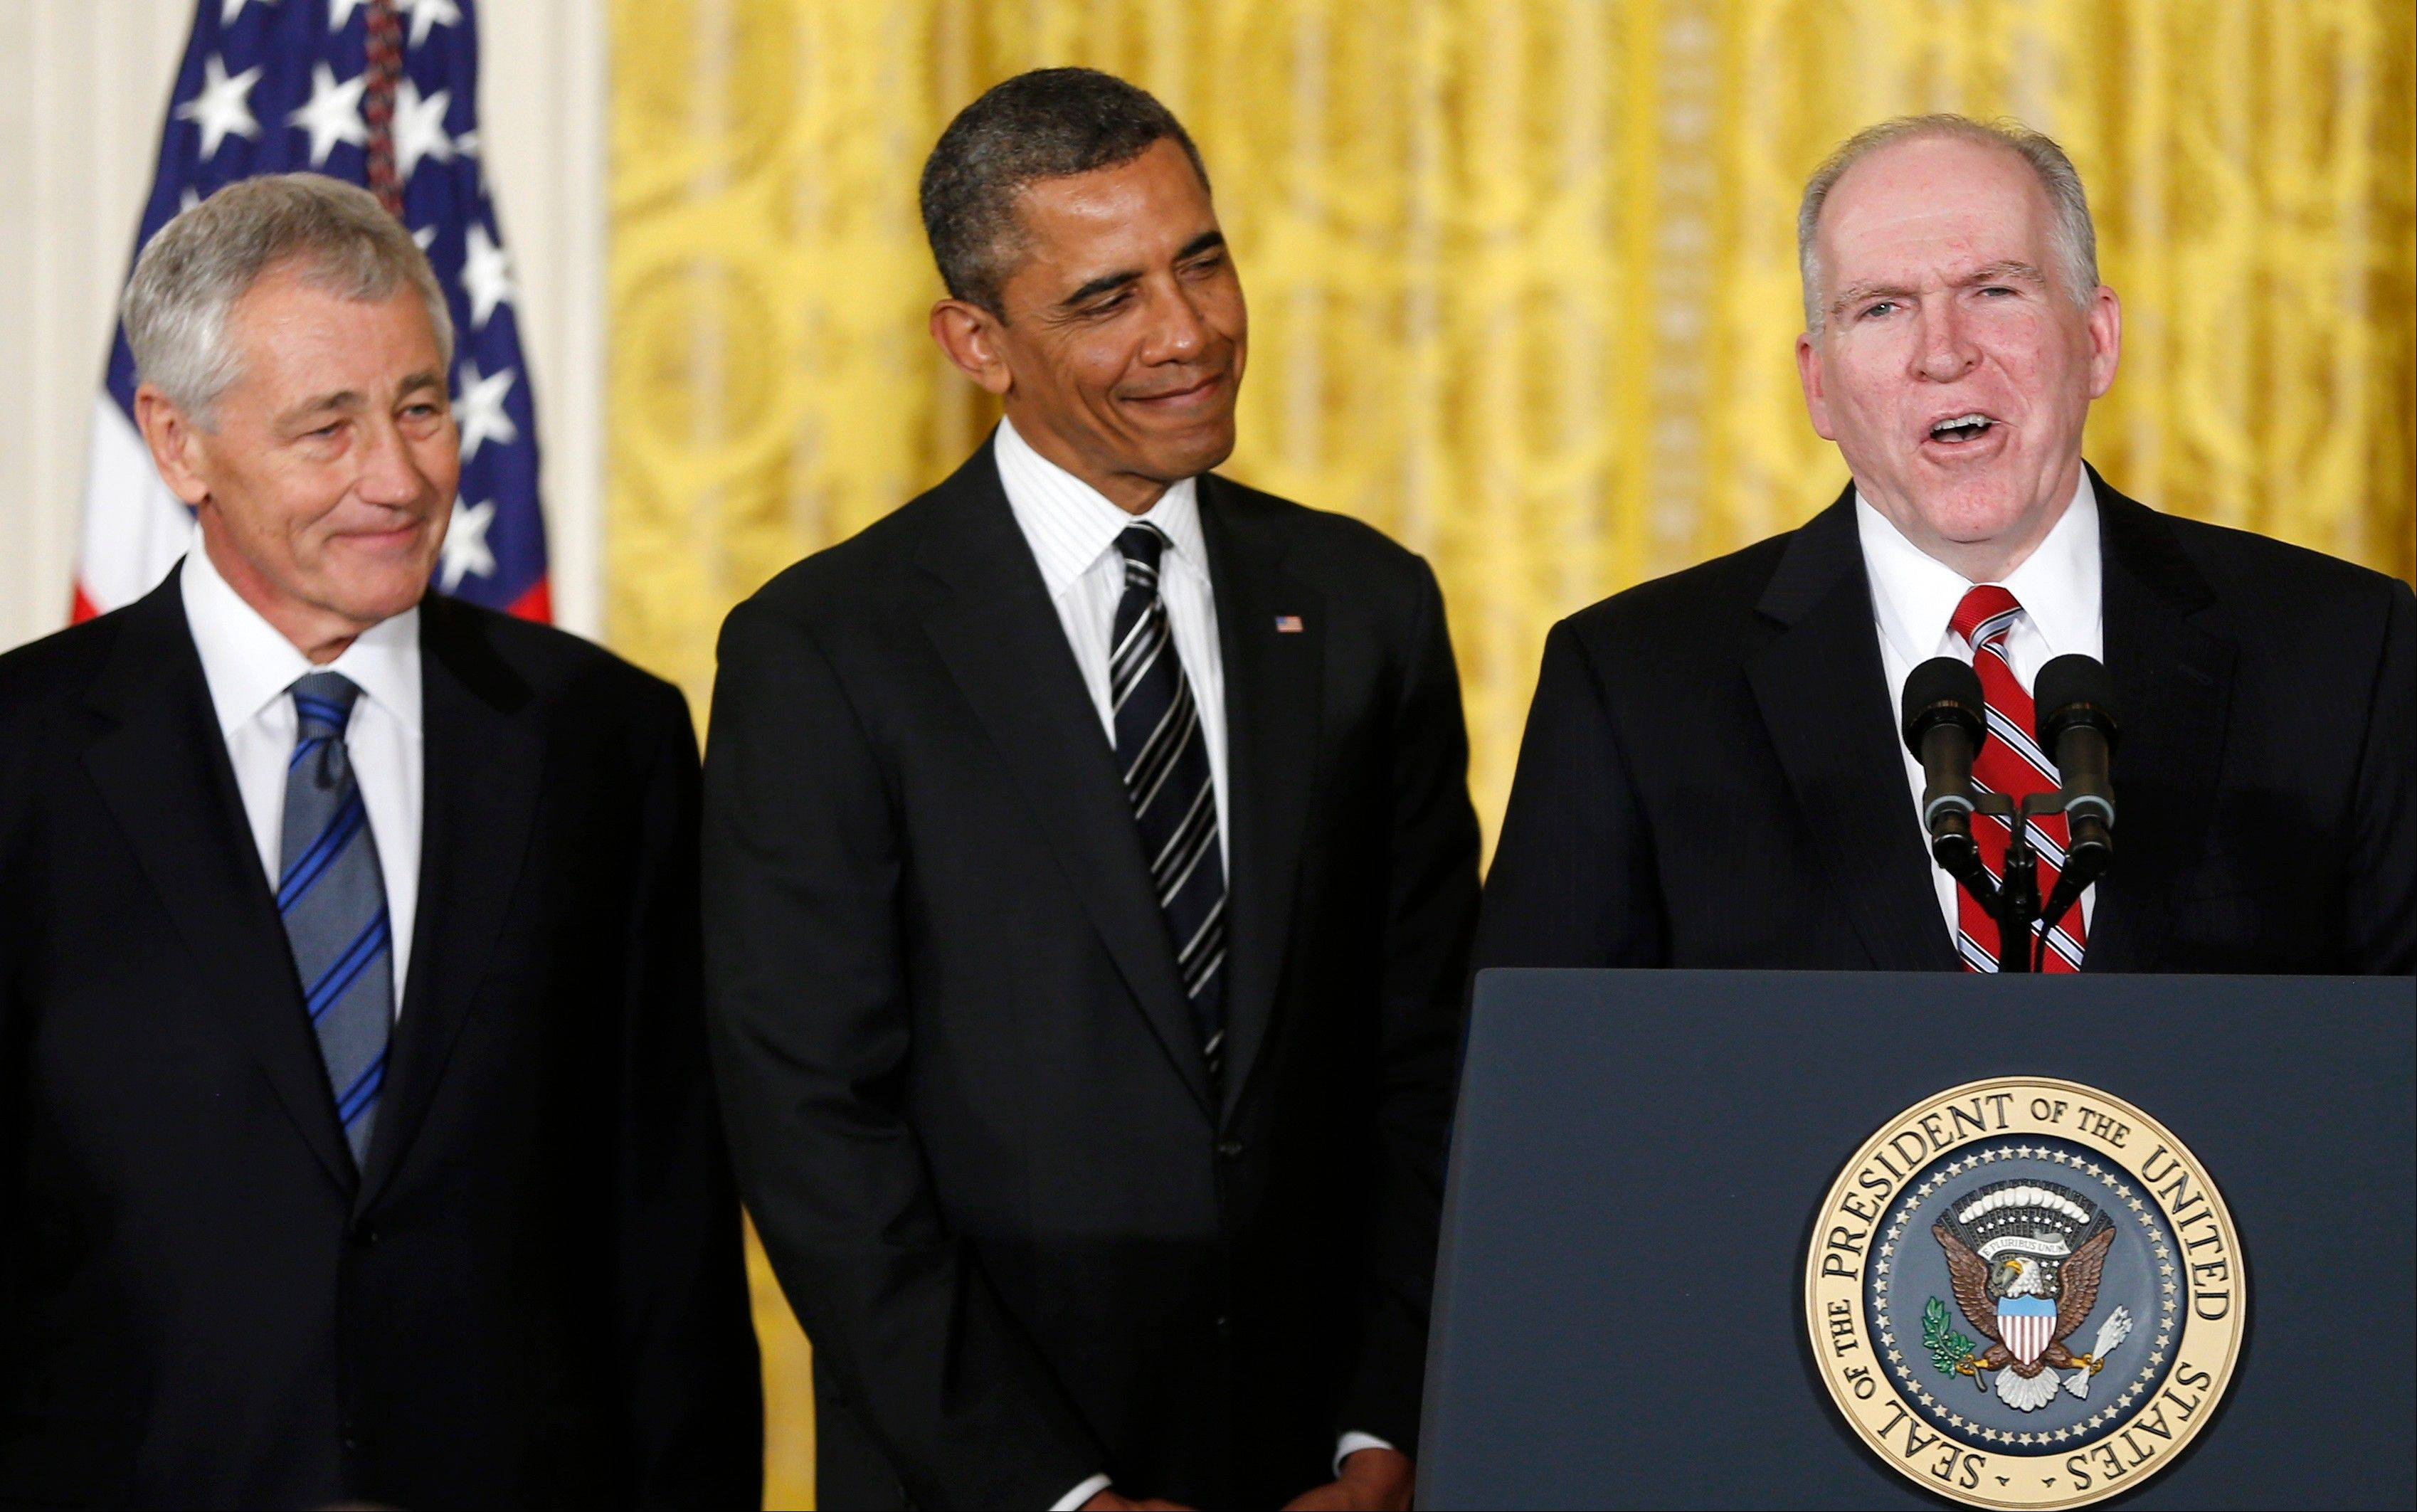 President Barack Obama and his choice for defense secretary, former Nebraska Sen. Chuck Hagel, left, listen as the president's choice for CIA director, Deputy National Security Adviser for Homeland Security and Counterterrorism, John Brennan, right, speaks at the White House Monday.